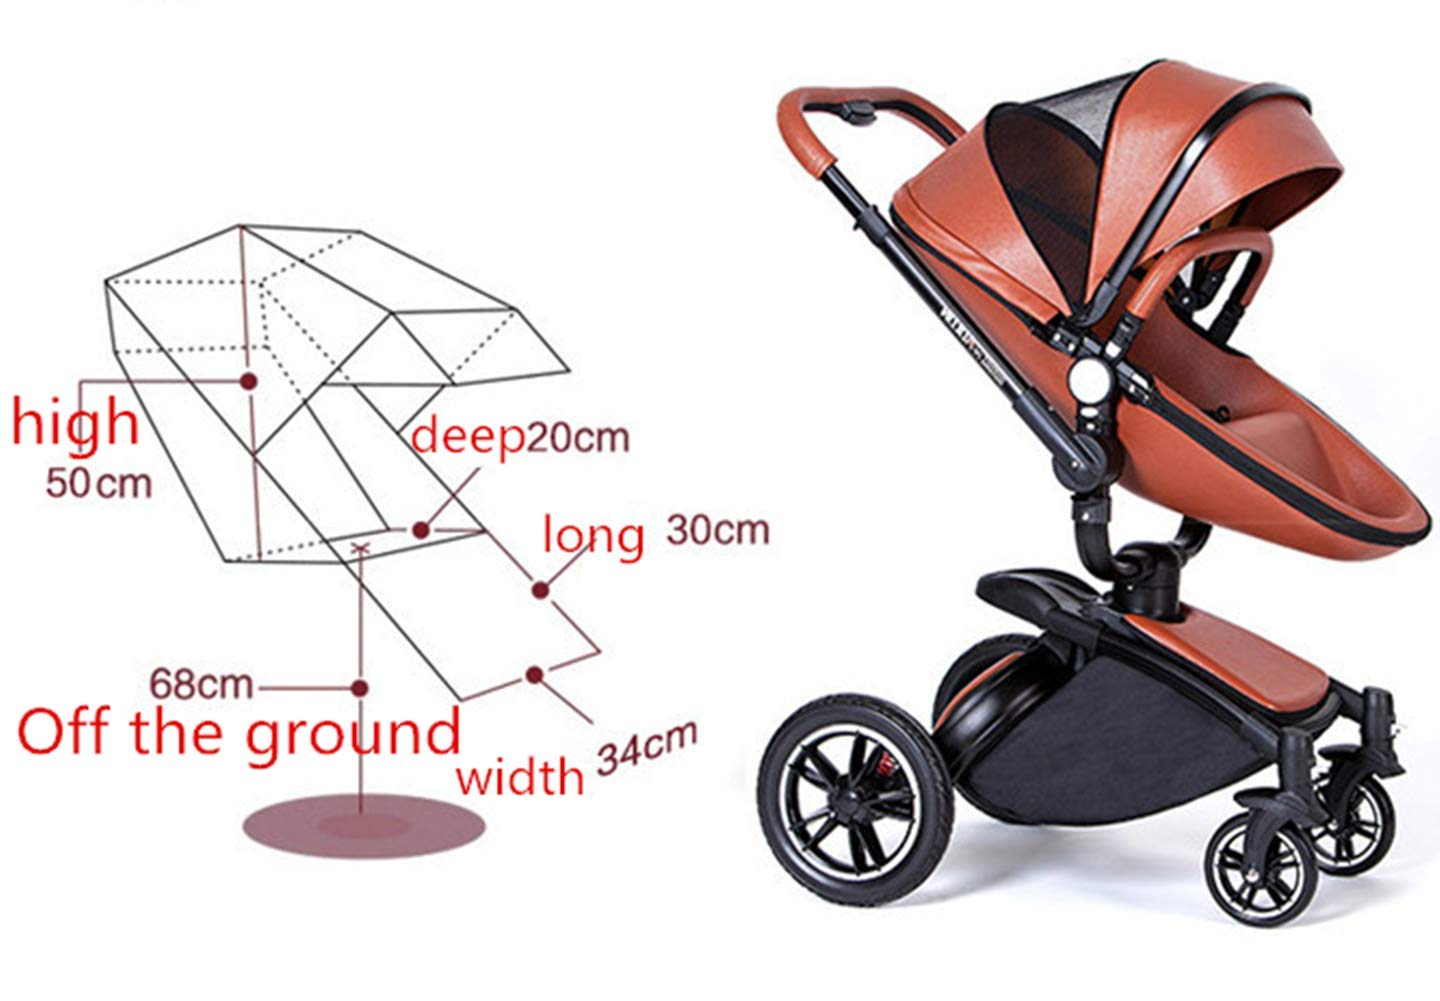 Baby Stroller High Landscape Foldable Two-Way Baby Car Can Sit Lie Children Bb Cart 360 Degree Can Be Rotated Ddpp Aluminum frame. Adjustable weather shield. Big sleeping basket. High view. Reversible stroller seat. Folding shock absorber. The aluminum alloy frame has a good luster. It is lighter than iron (or steel, copper) and does not rust, so it can be used for a long time; the adjustable handlebar can meet the needs of people of different heights and can adjust the push position; the reversible stroller seat makes the baby easy to face For parents or facing the world. .PU wheel, and can roll on rough terrain, such as grass, gravel road, sidewalk, sand and so on. The rotating front wheel can be locked in a precise position, and the suspension spring mounted on it effectively absorbs different vibrations to protect the baby's brain and body. The one-touch parking brake brakes both rear wheels quickly and thoroughly, keeping the baby away from danger and risk. 5